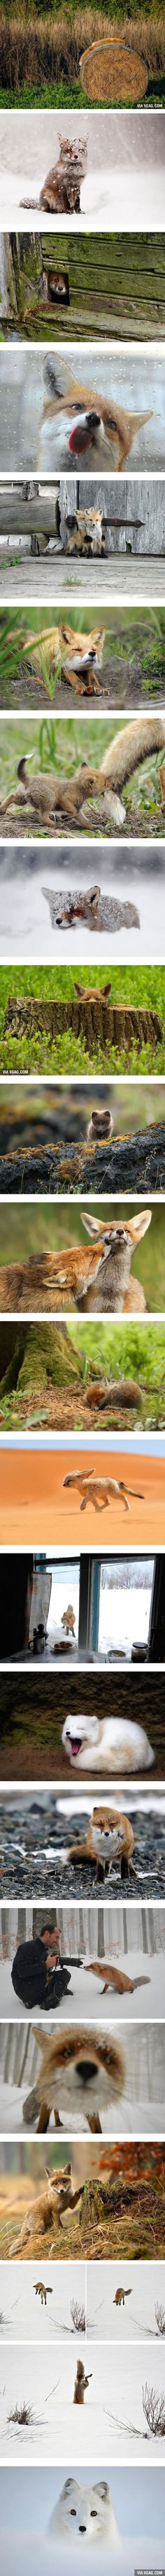 22 Photos Make You Fall In Love With Foxes (#2,8,11 By Roeselien Raimond )